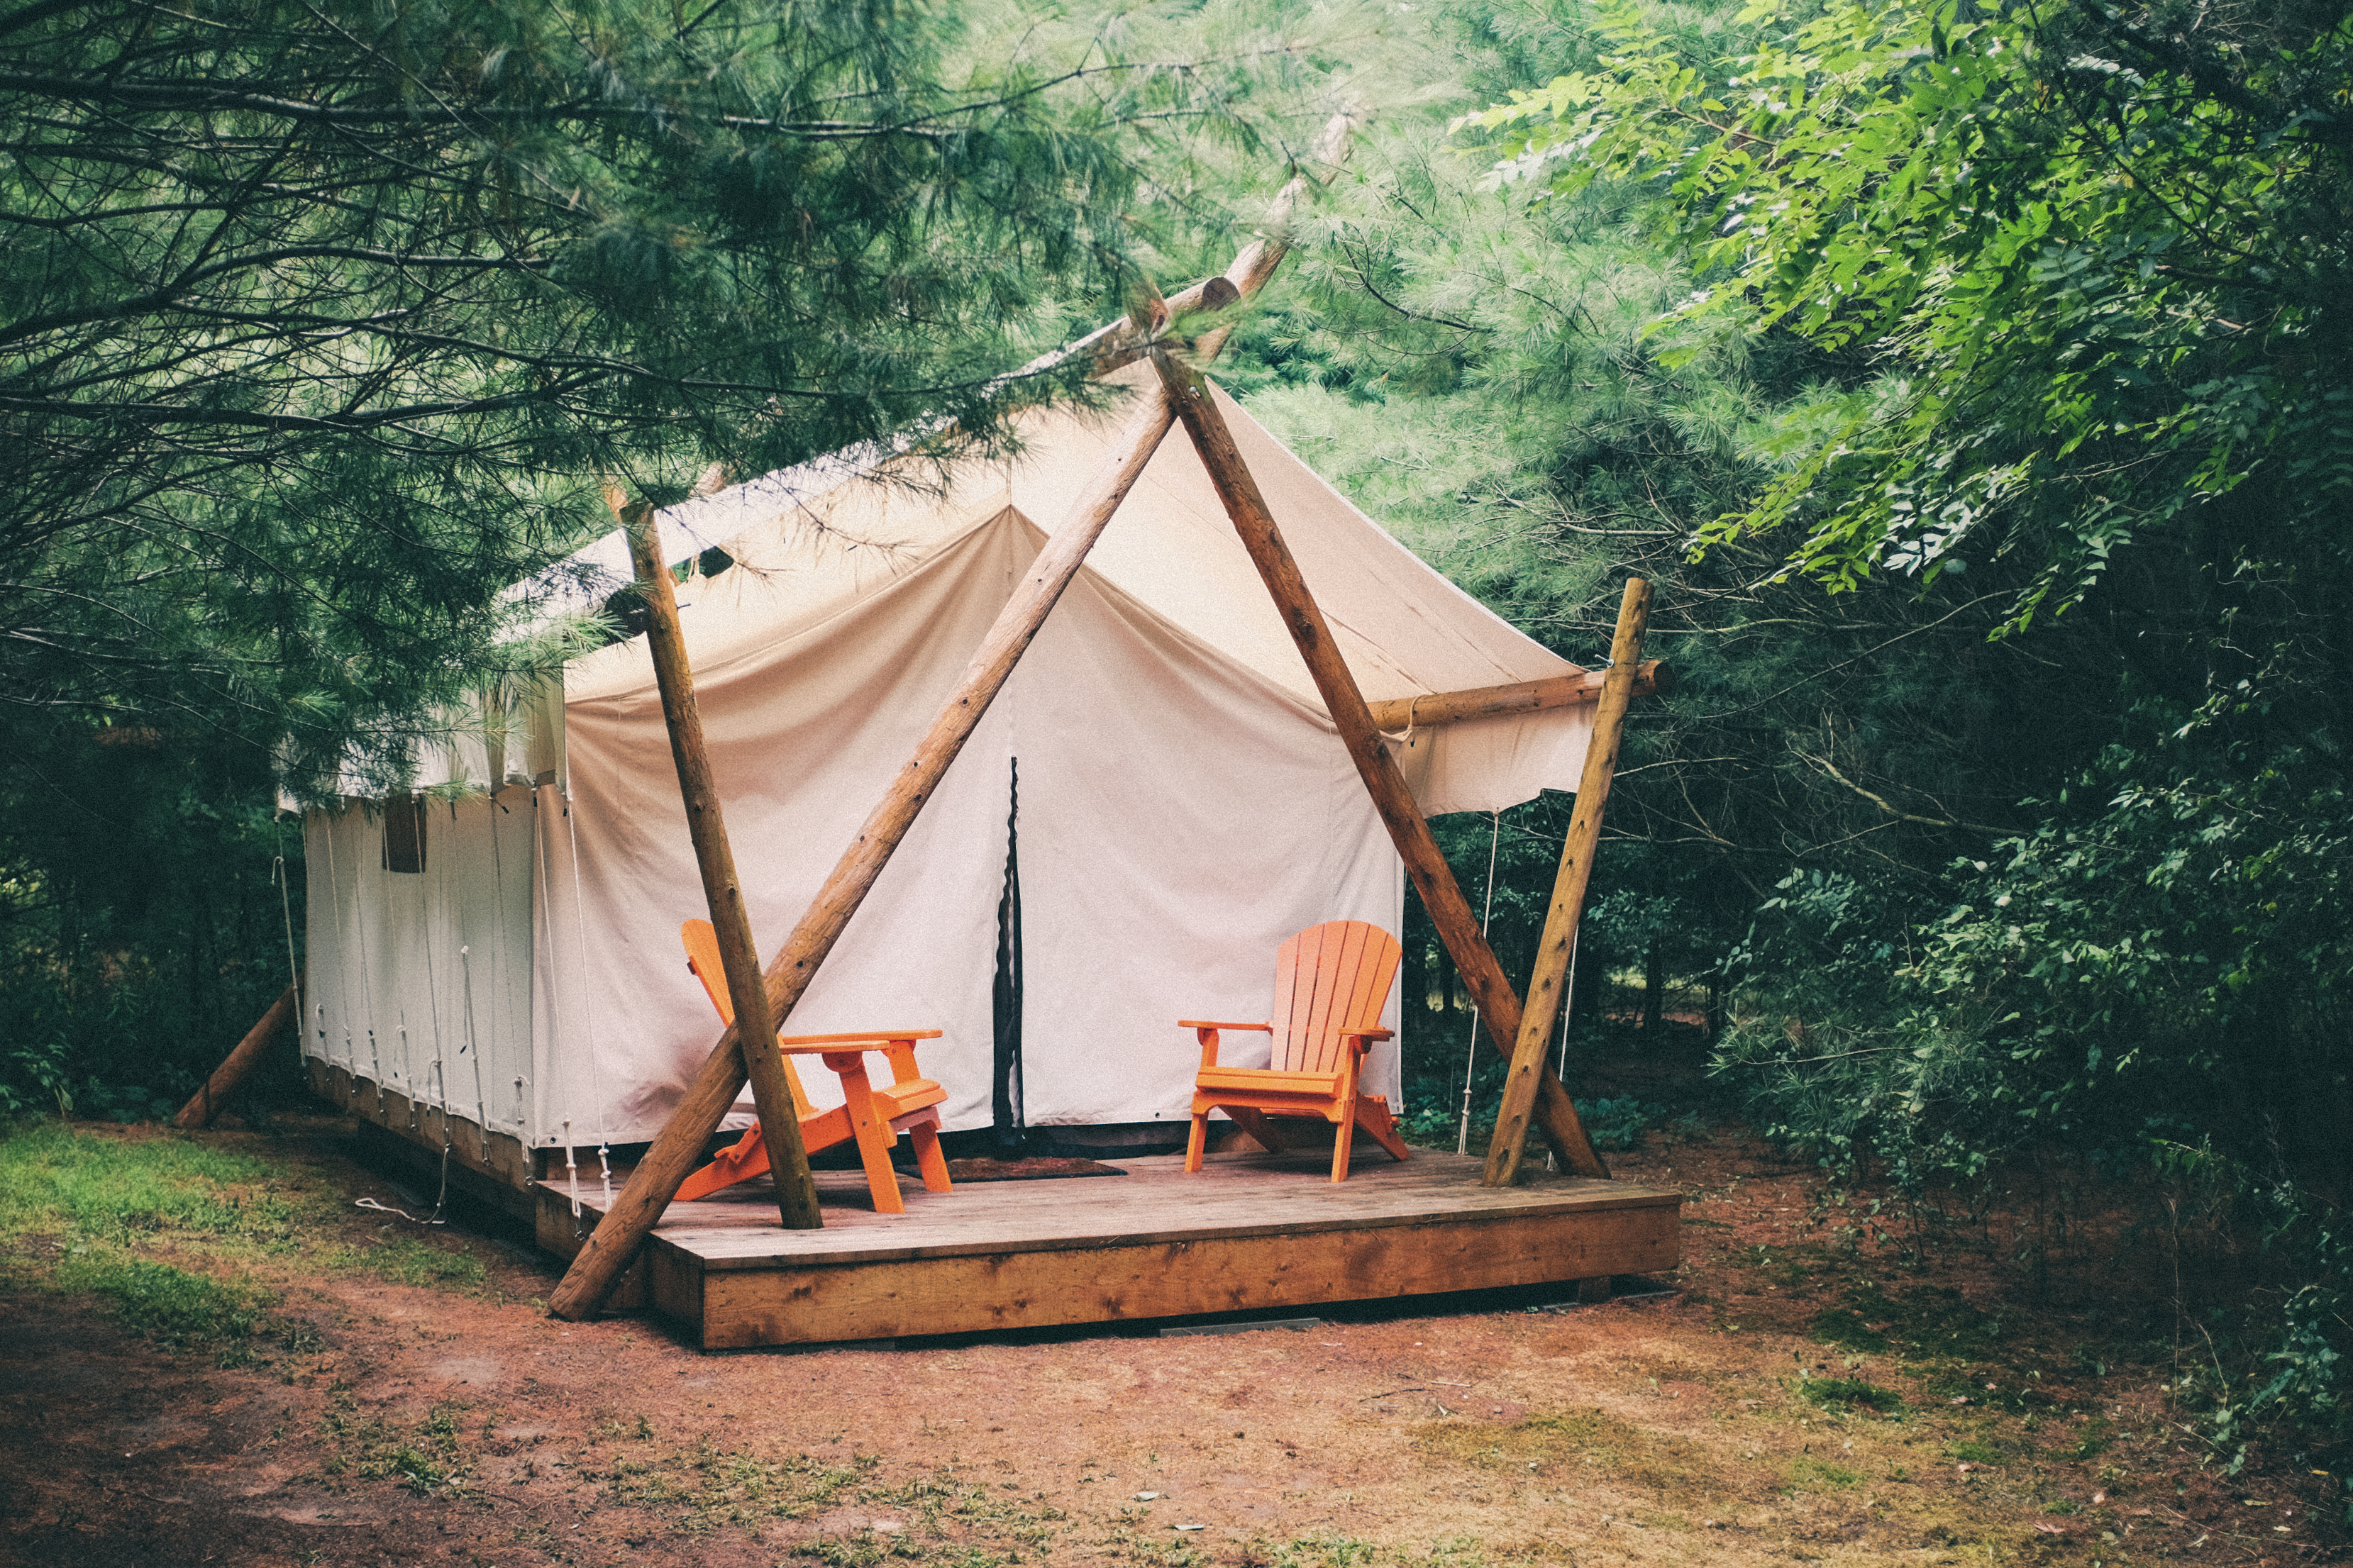 Falling for Glamping